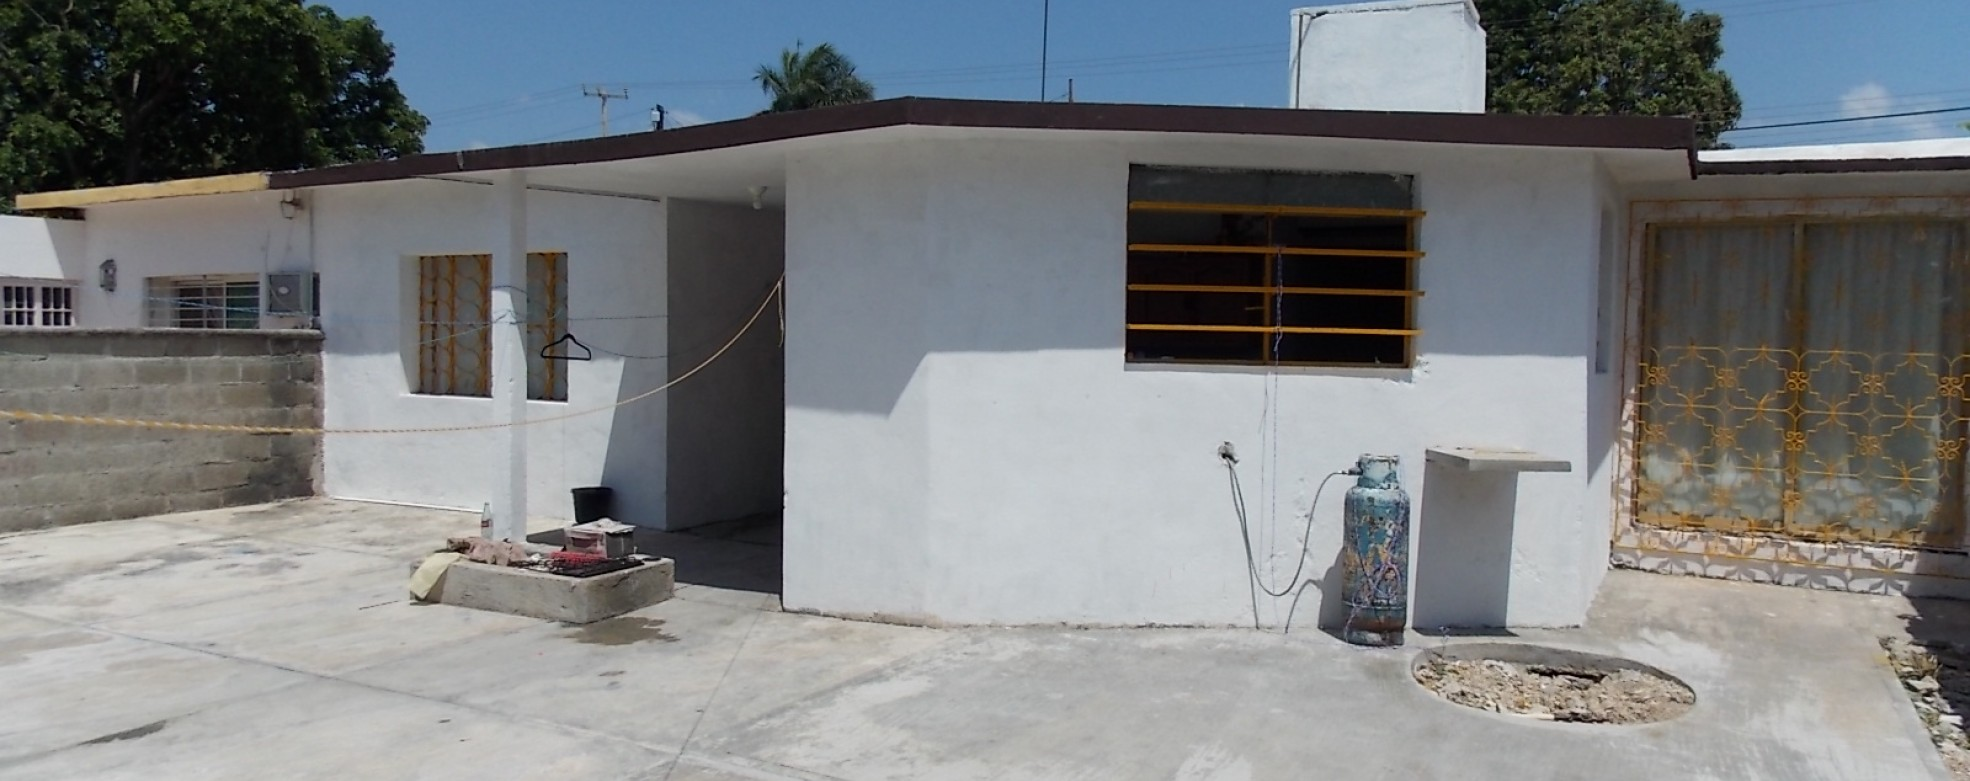 Colonia Aleman Yucatan Real Estate We Know Yucatan